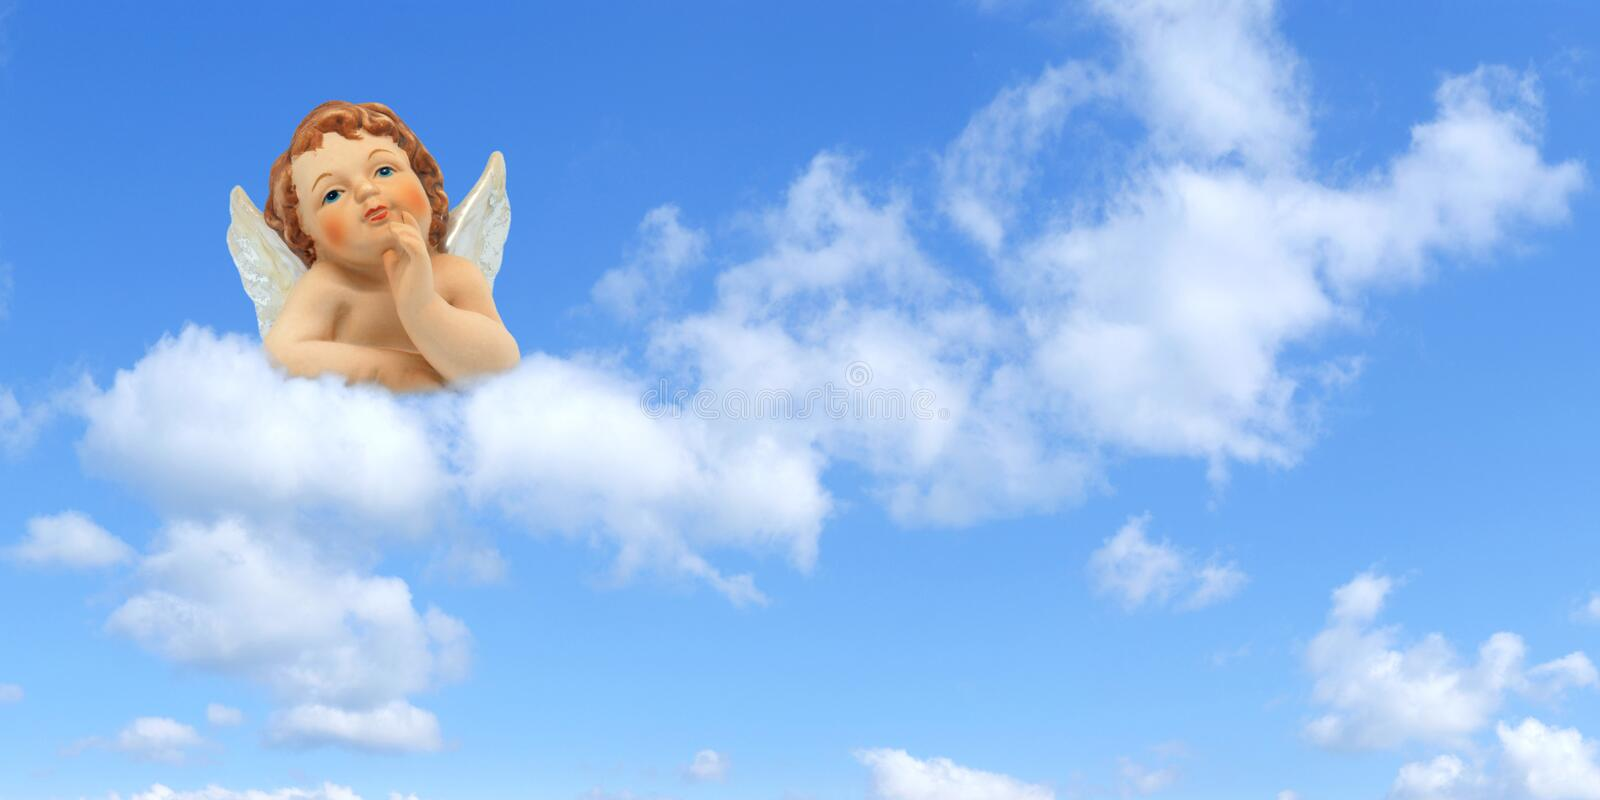 Thinker angel above the clouds on a blue sky background: greeting card for christmas, baptism or communion stock image